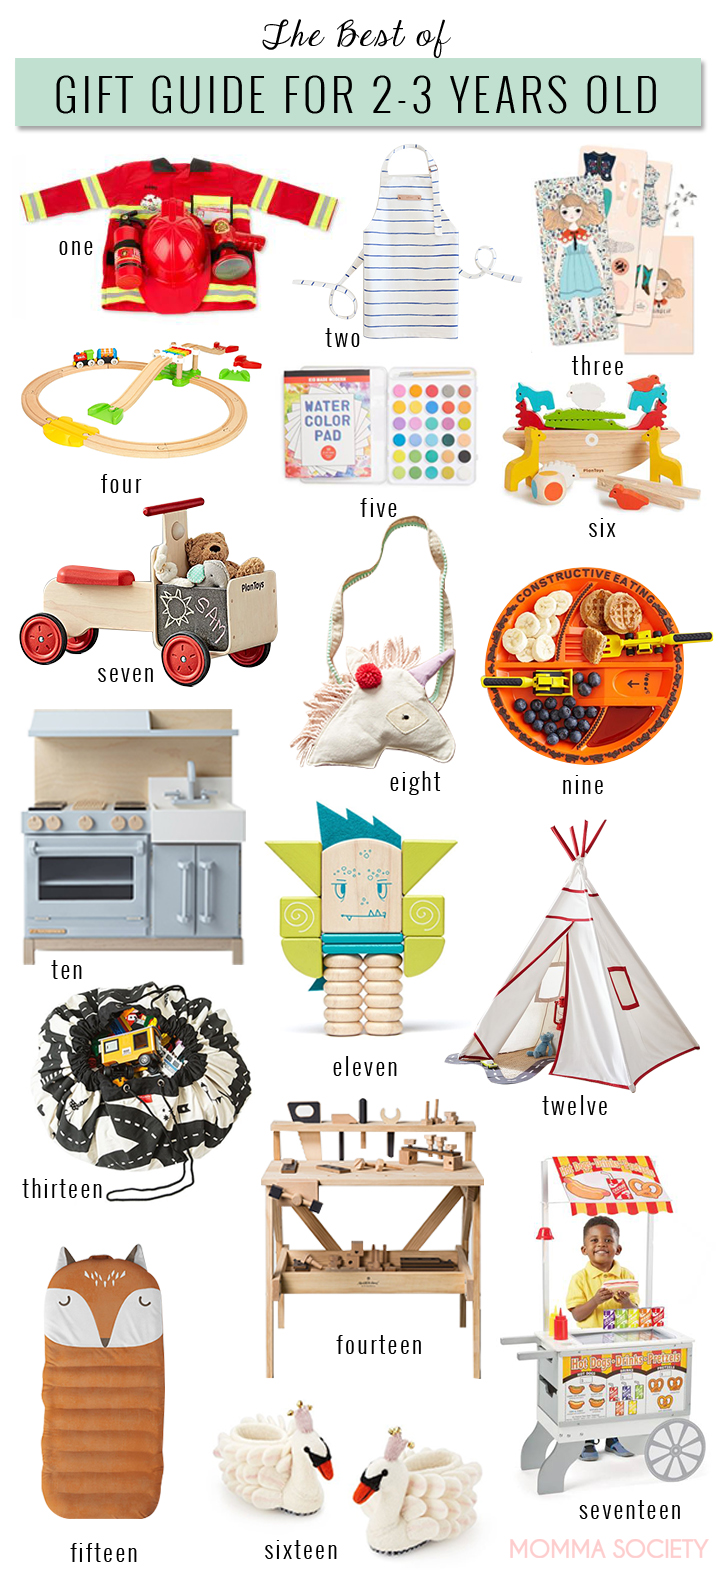 Best Gifts For 2 Year Old 3 Toddler.jpg